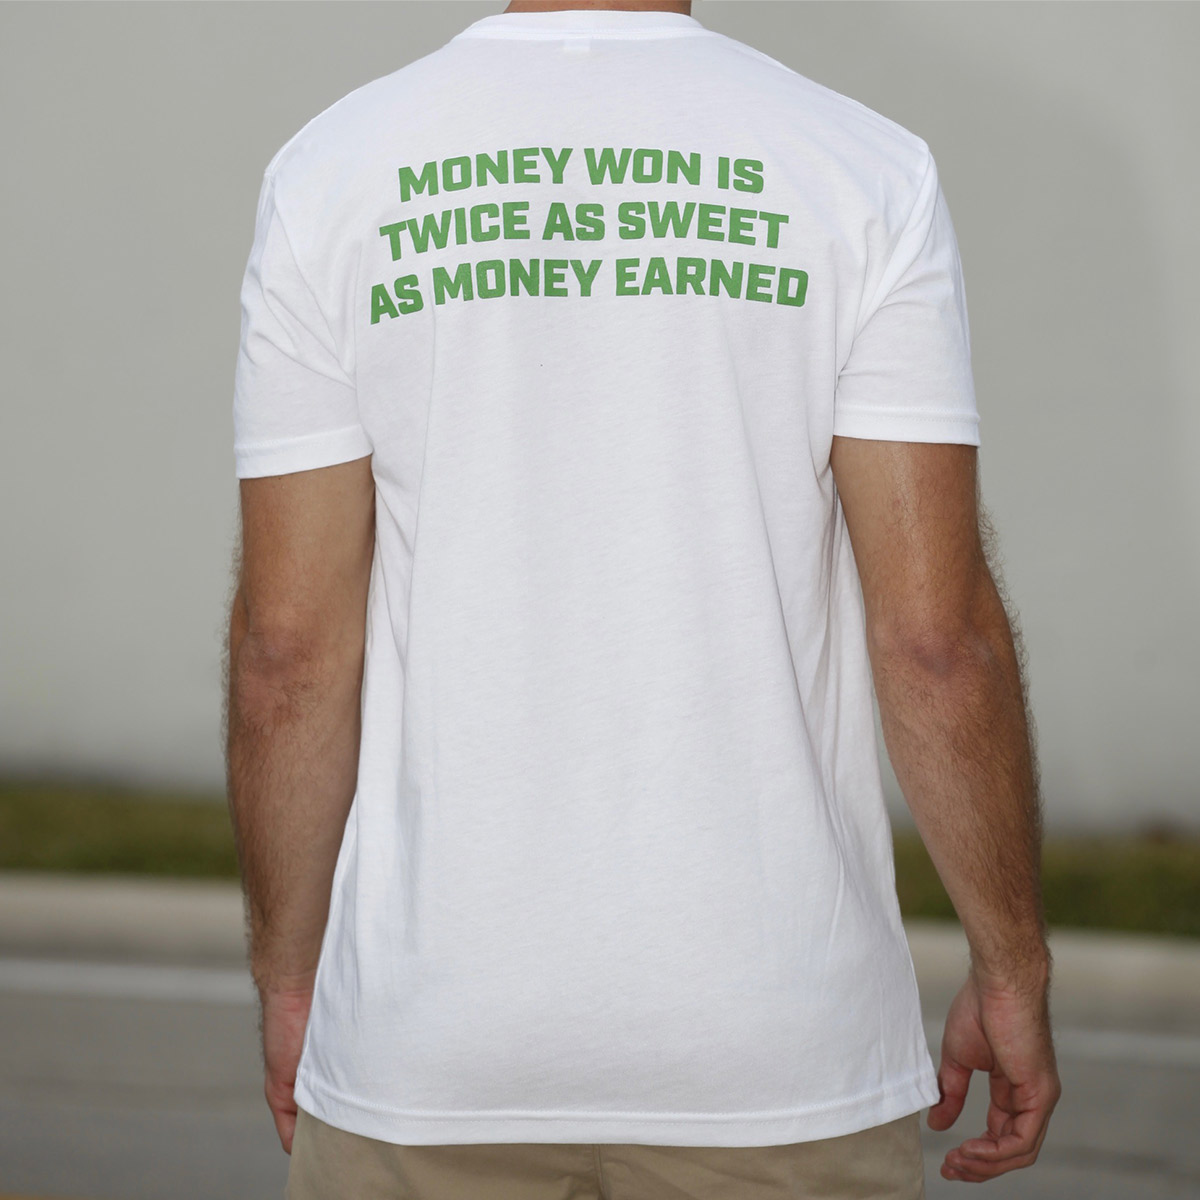 Money won is twice as sweet as money earned - white t shirt - back